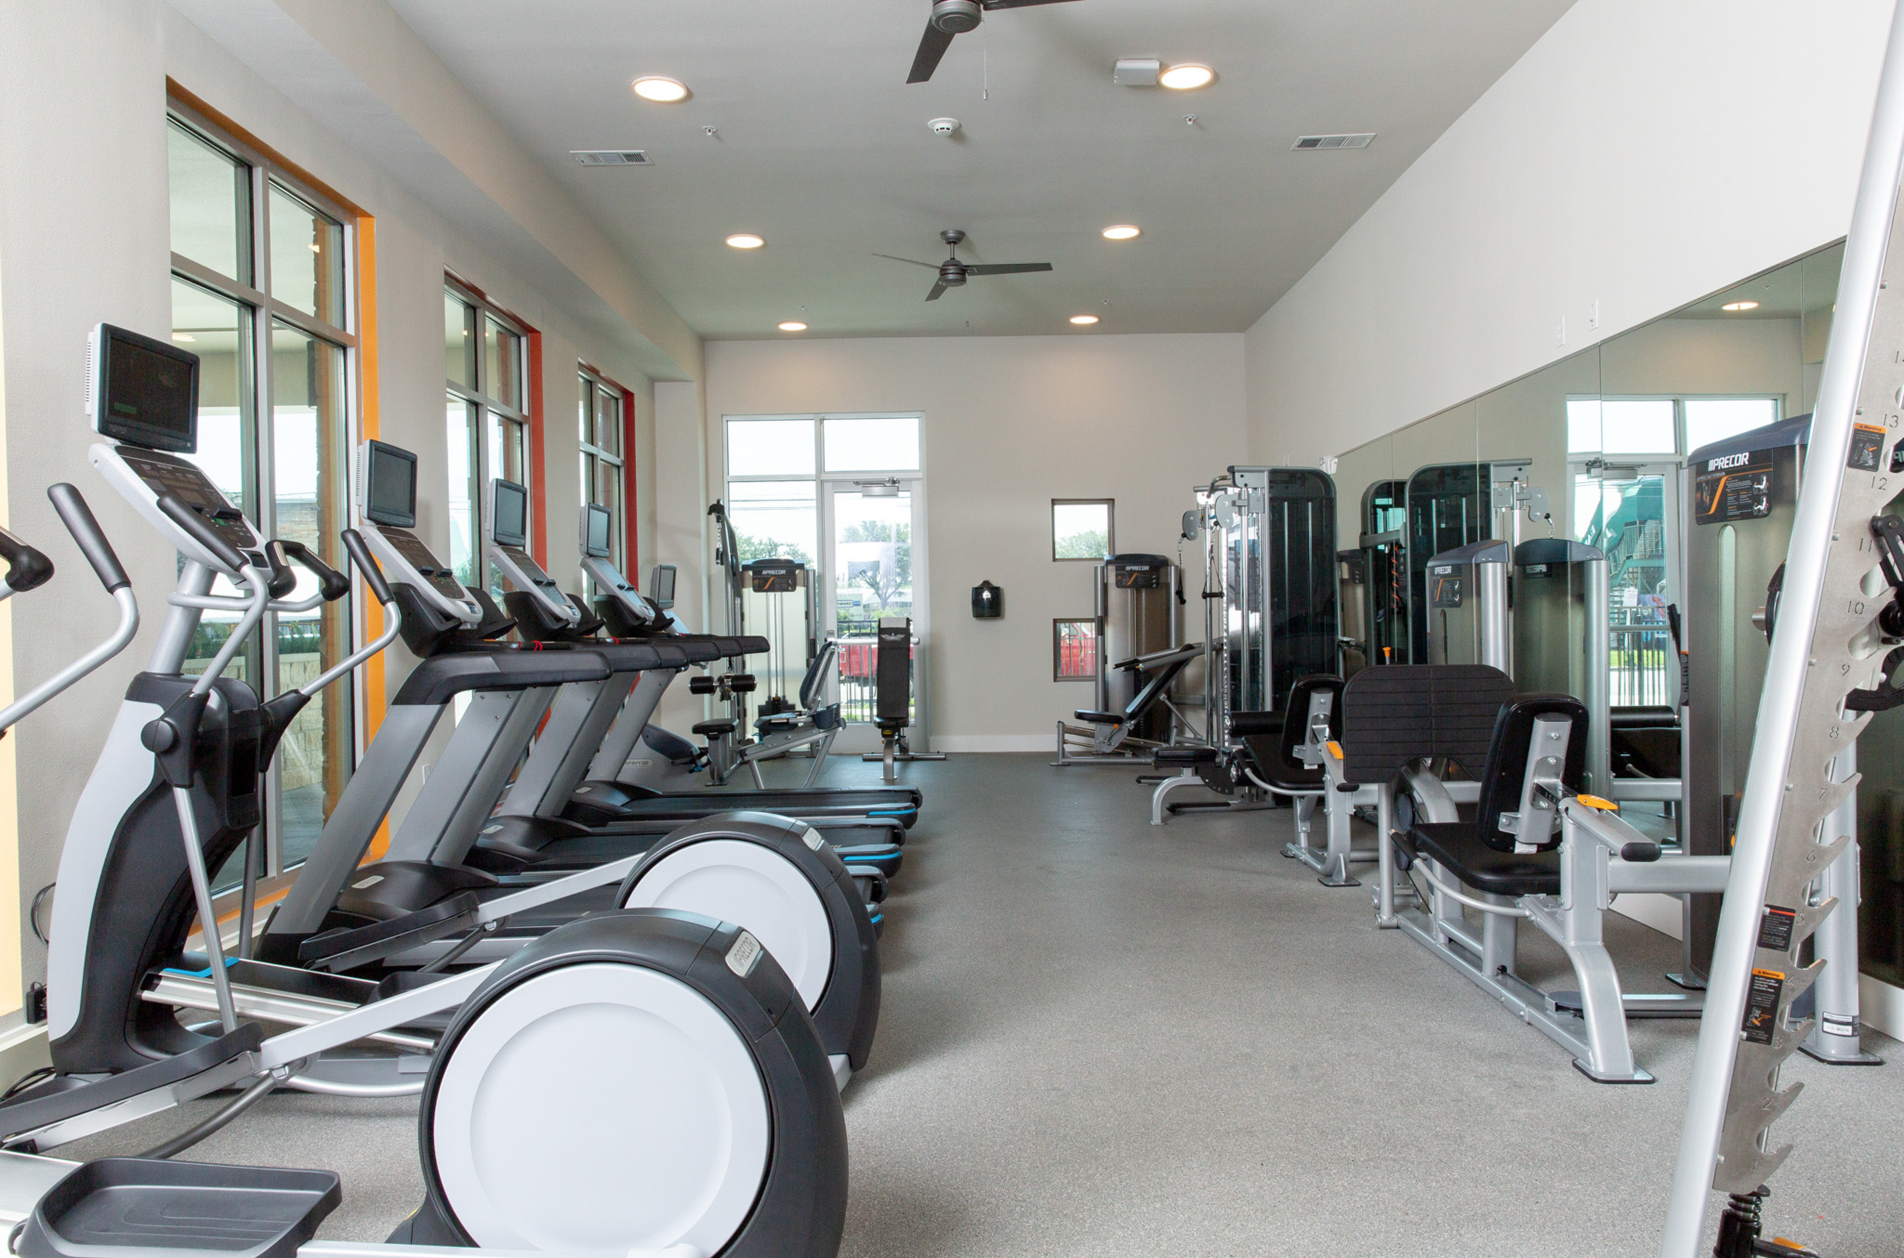 Interior of 24-hour fitness center. FLORA Apartments is a modern and upscale development in Austin, Texas by JCI Residential. Located on Middle Fiskville Road in the North Loop neighborhood in north central Austin. Efficiencies, one-bedroom, and two-bedrooms units. Pet-friendly.